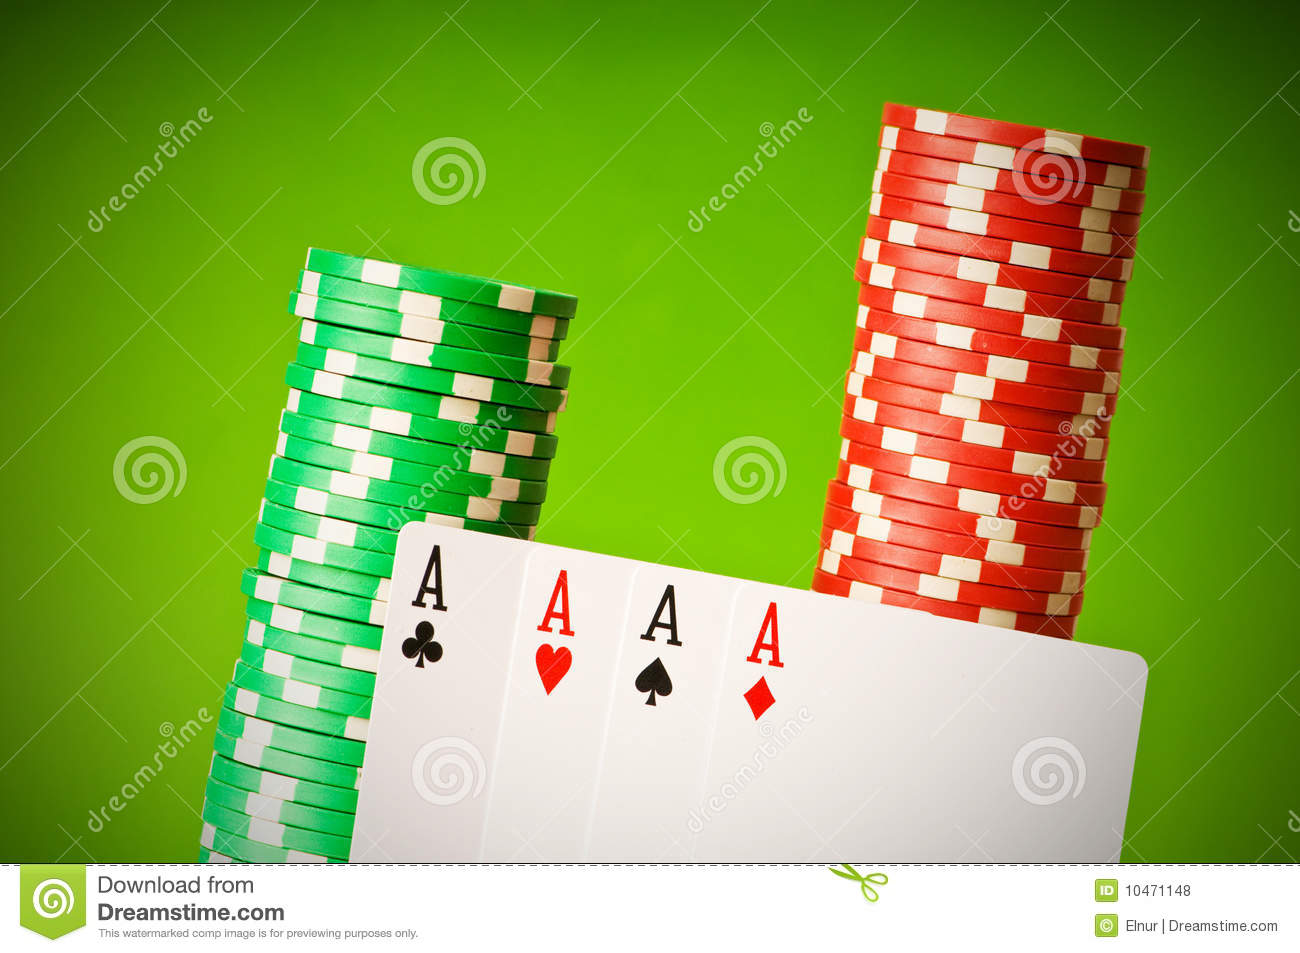 4 aces casino galway